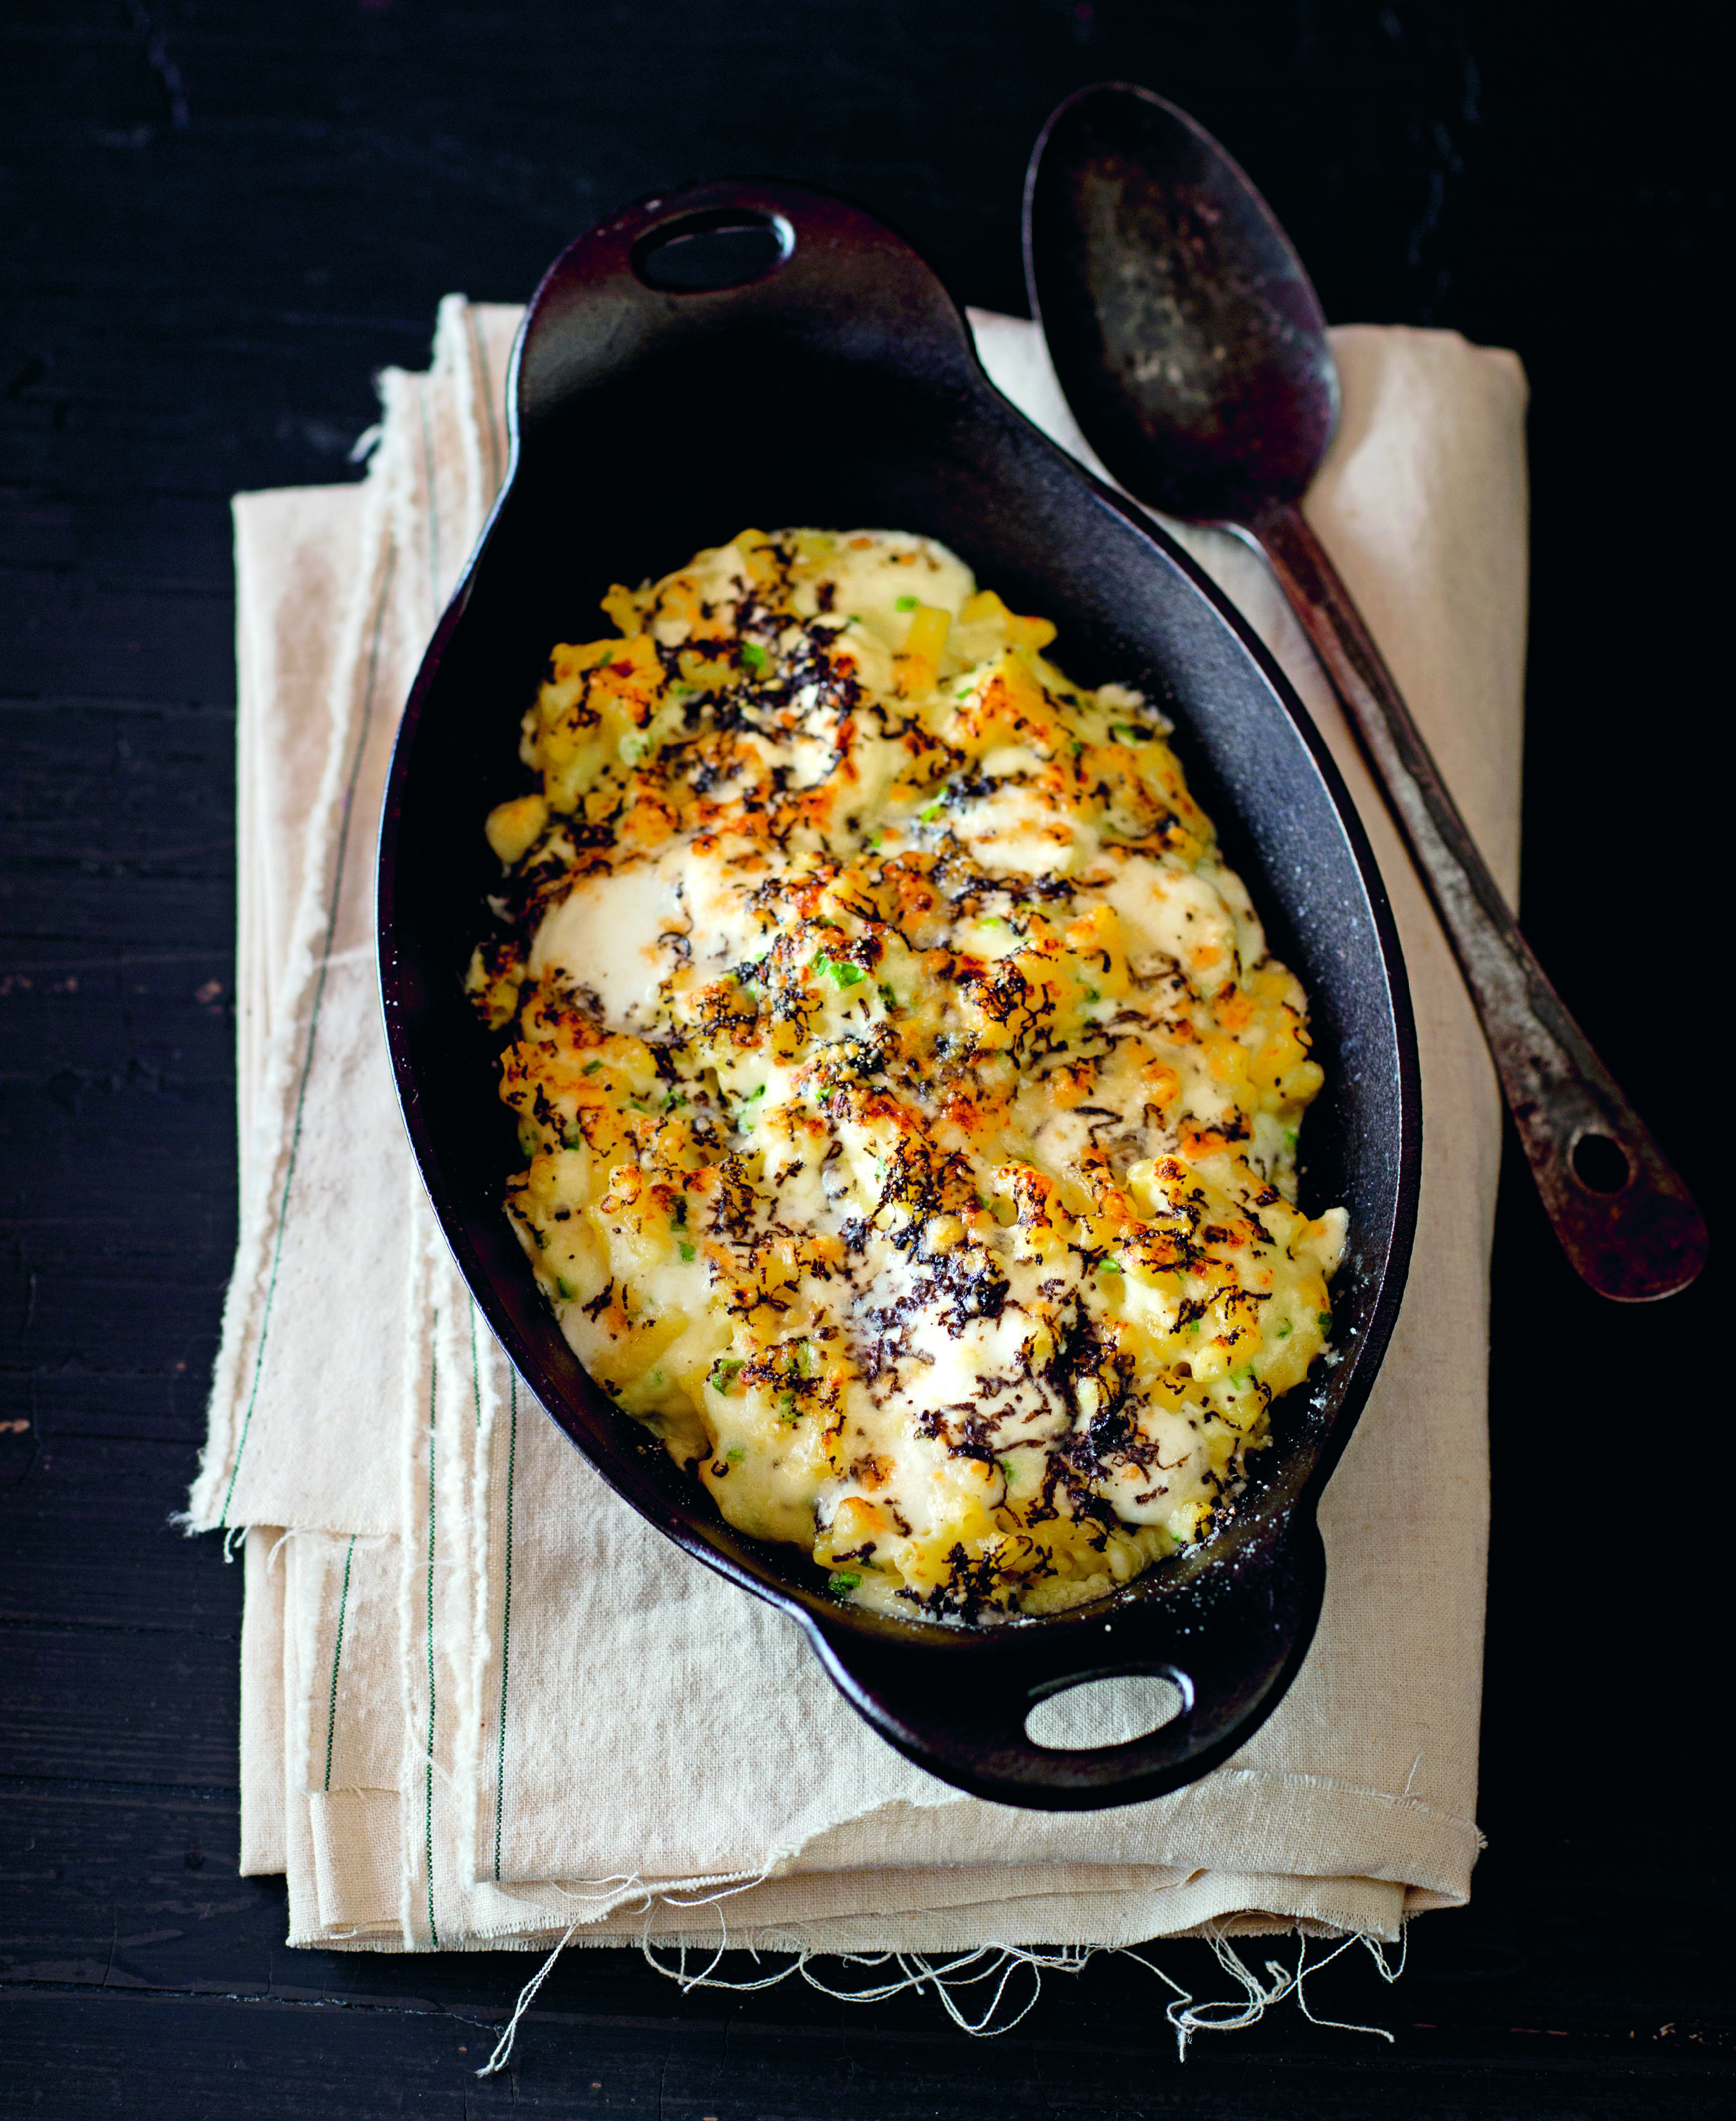 Truffle macaroni and cheese